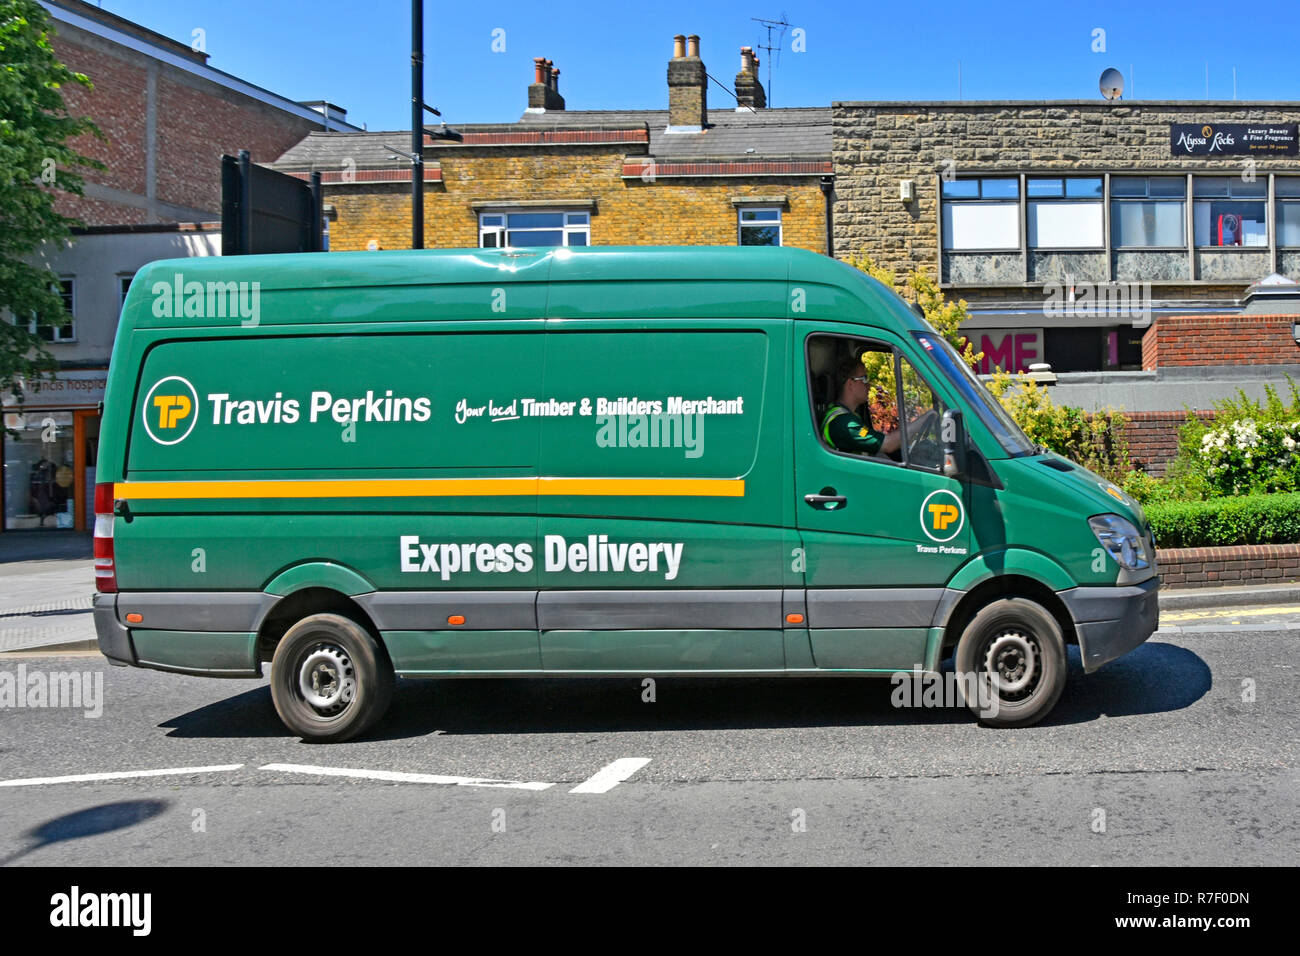 Travis Perkins builders merchants building materials supply chain business local express delivery van & driver Brentwood high street Essex England UK - Stock Image